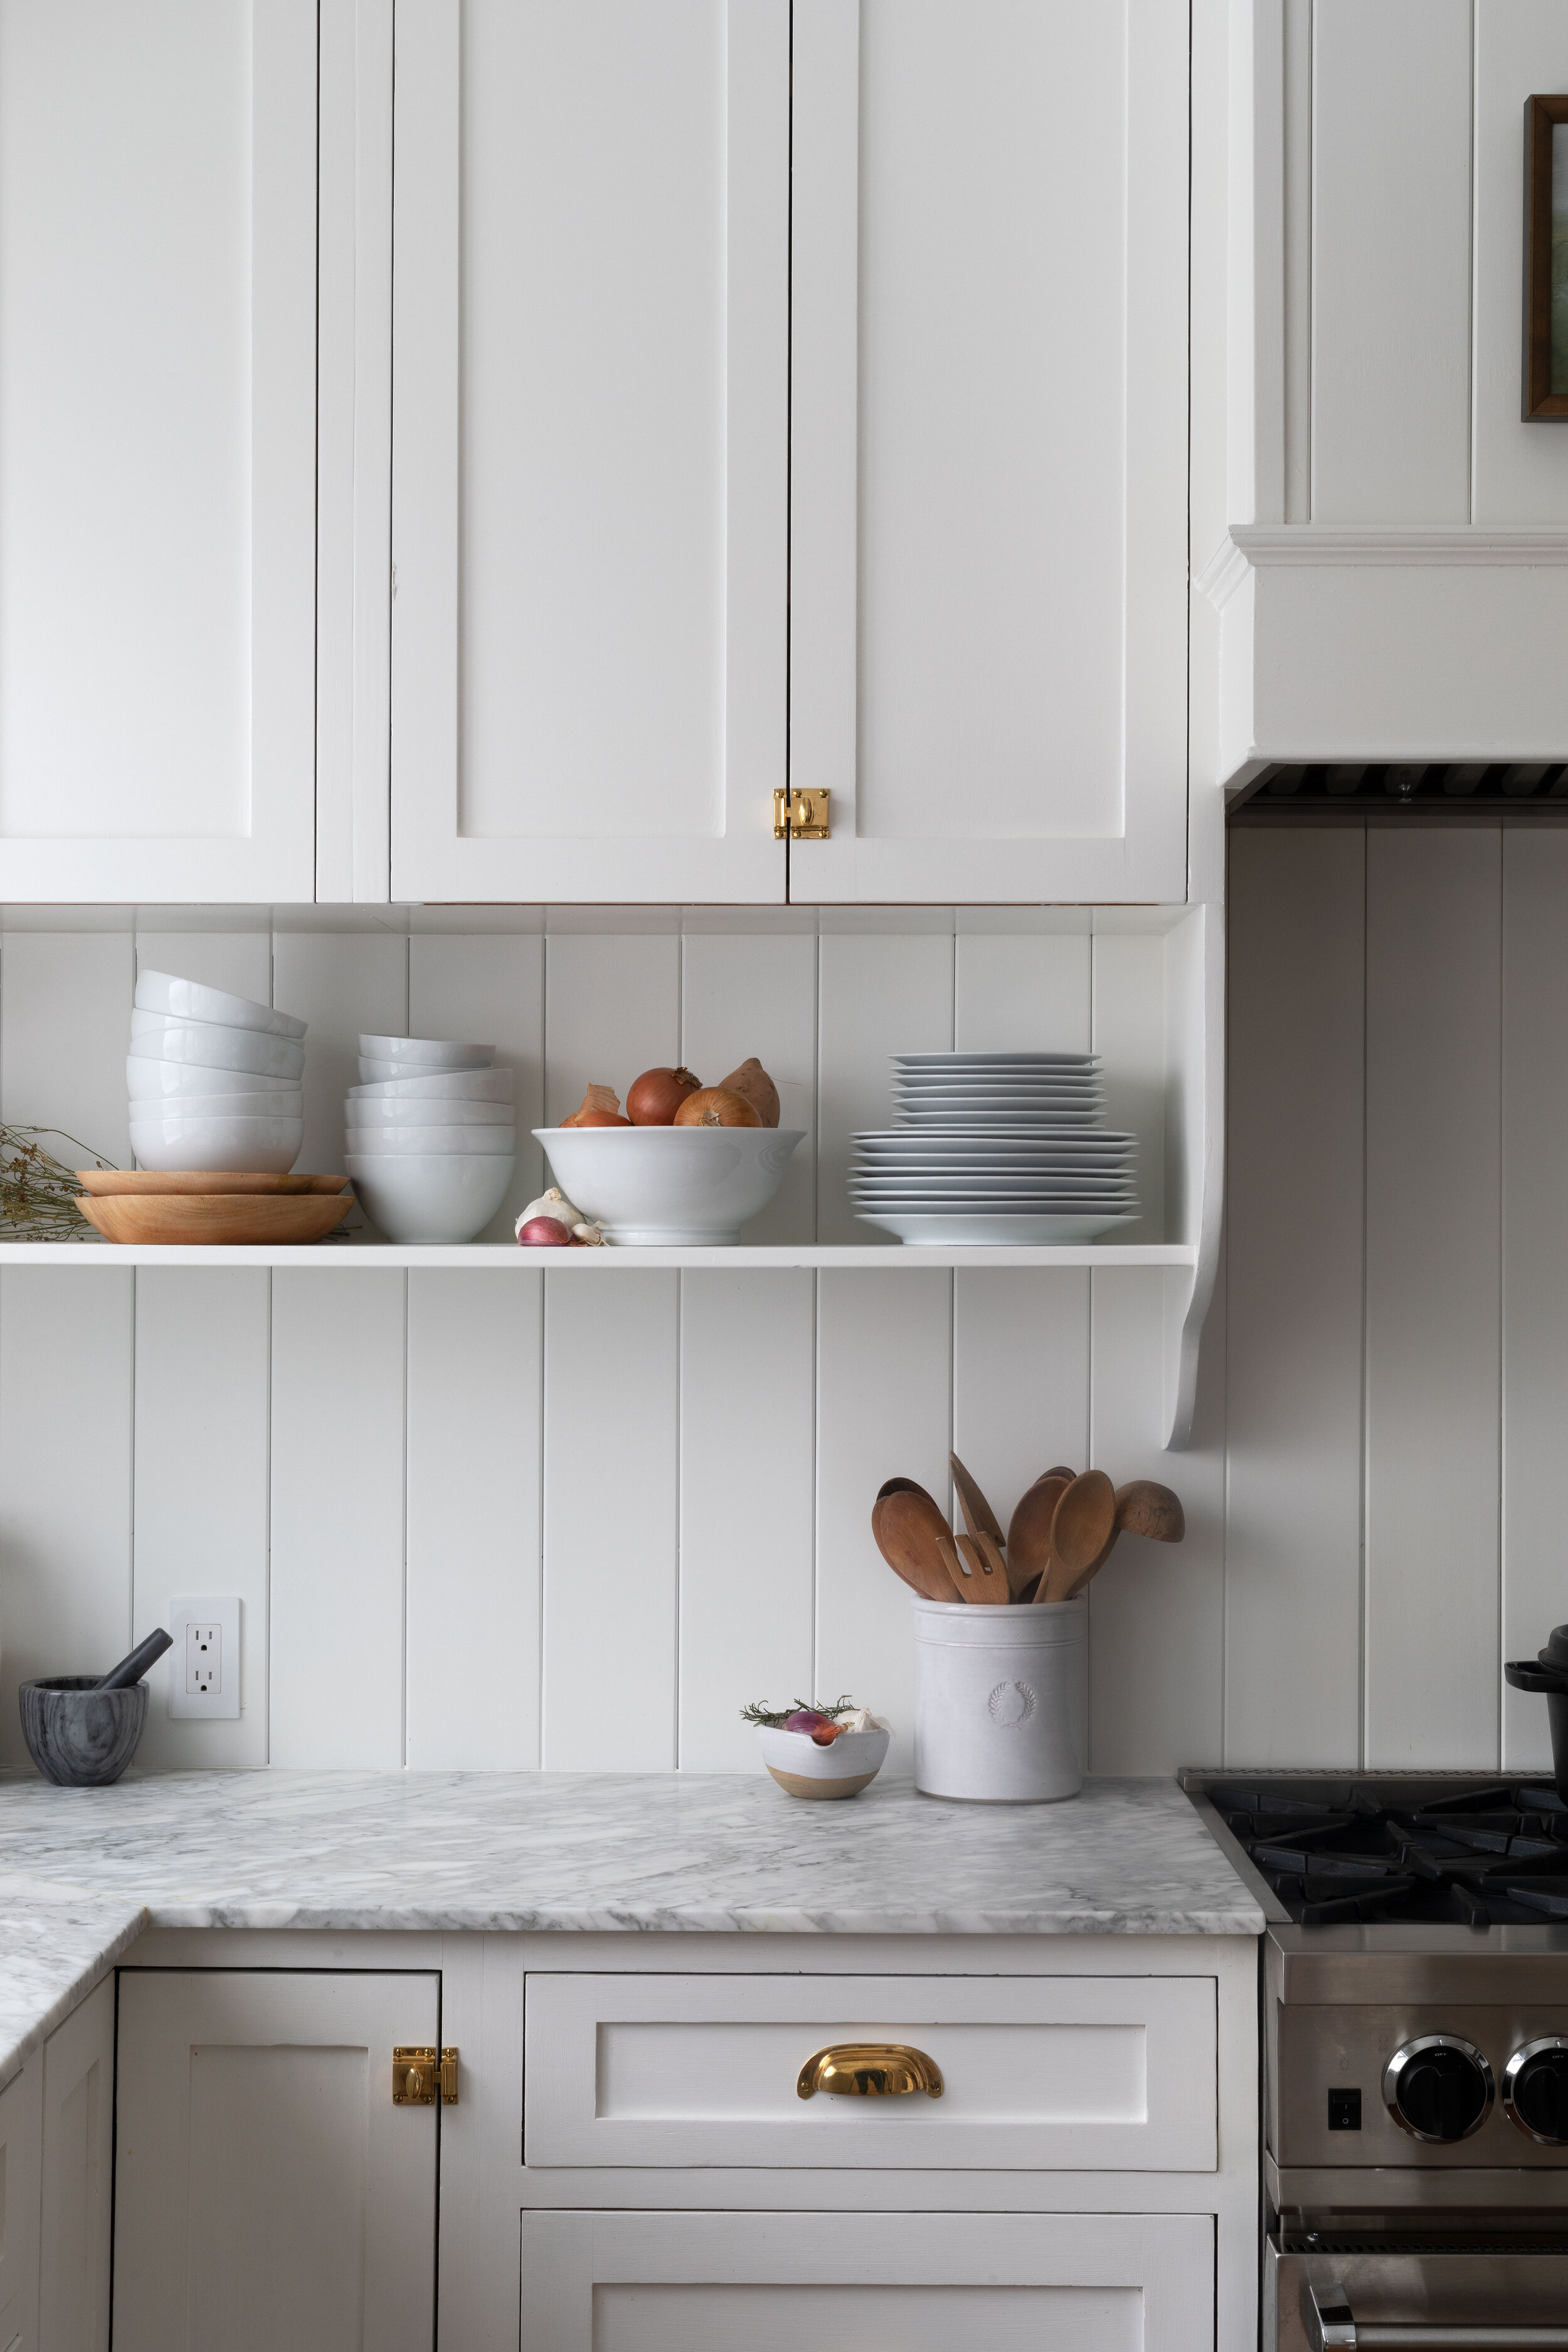 The Grit and Polish - Farmhouse Country Kitchen Reveal 3.0 22 web.jpg